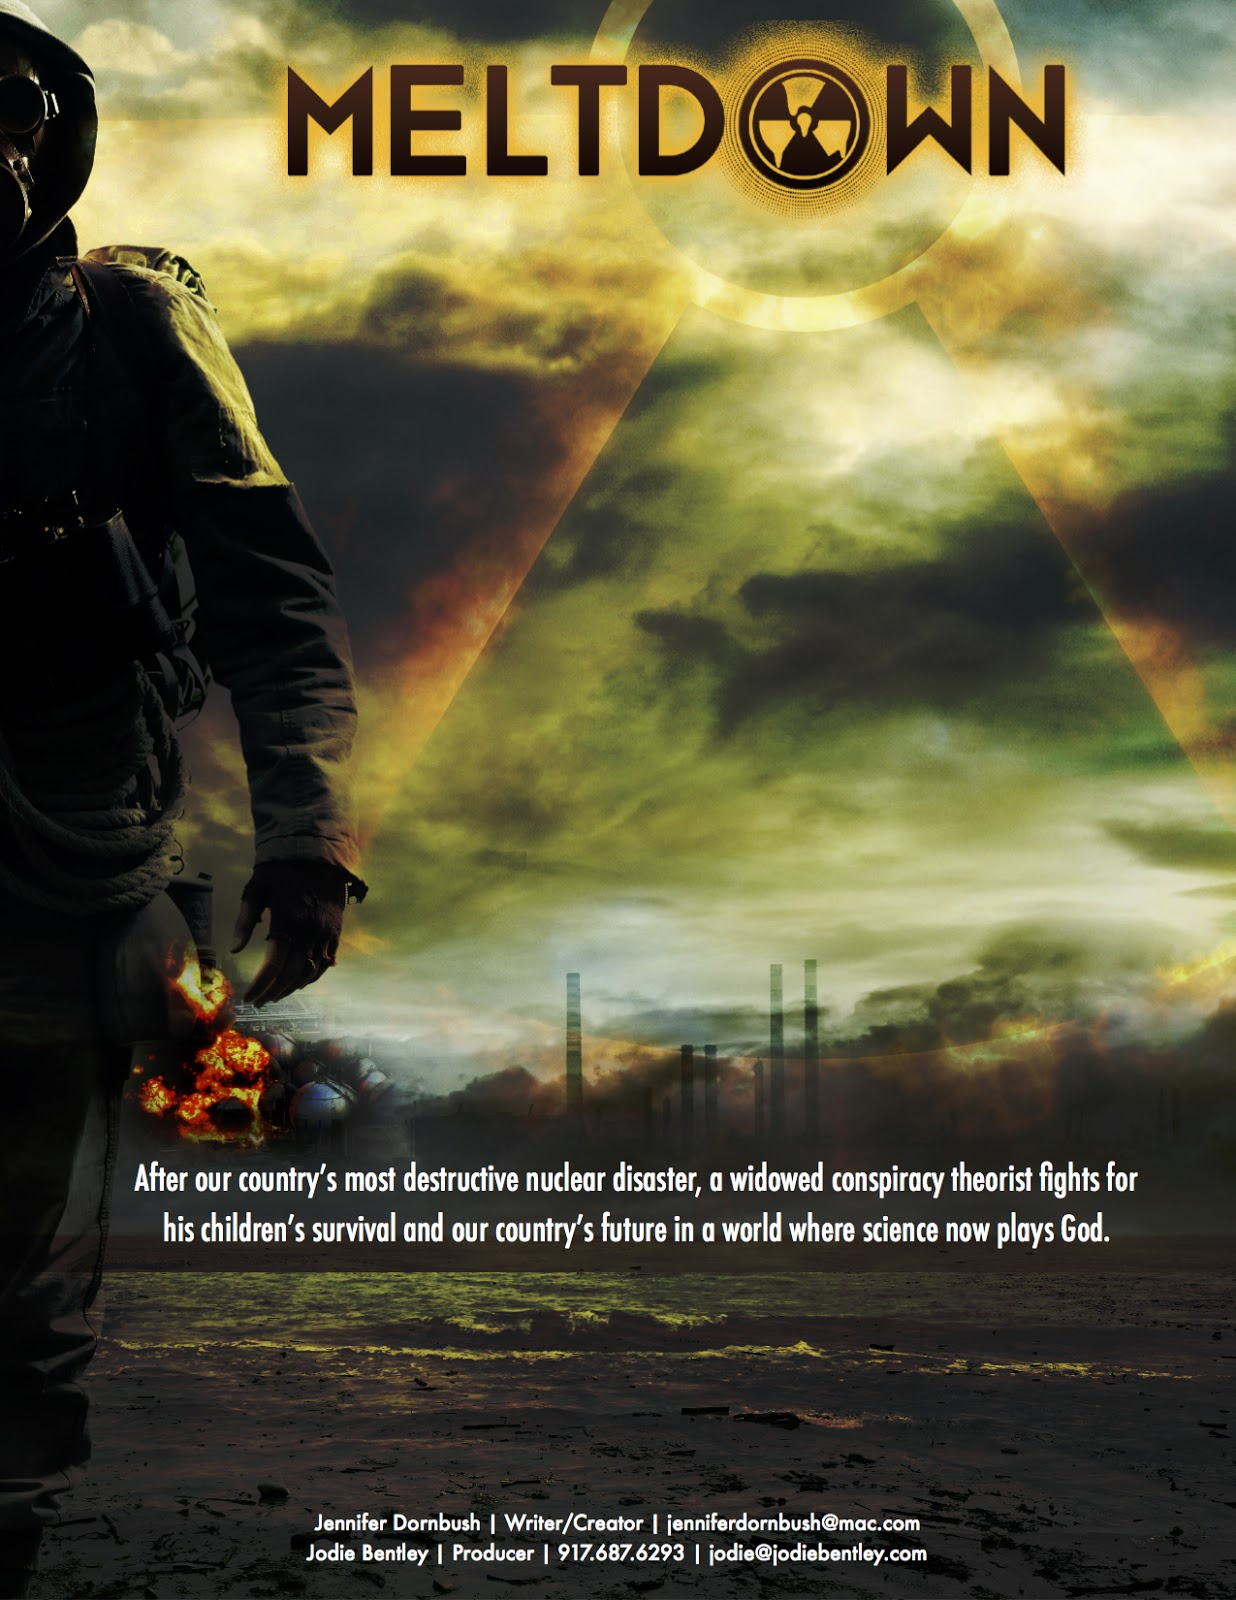 Meltdown - After our country's most destructive nuclear disaster, a widowed conspiracy theorist fights for his children's survival and the country's future in a world where science plays God.